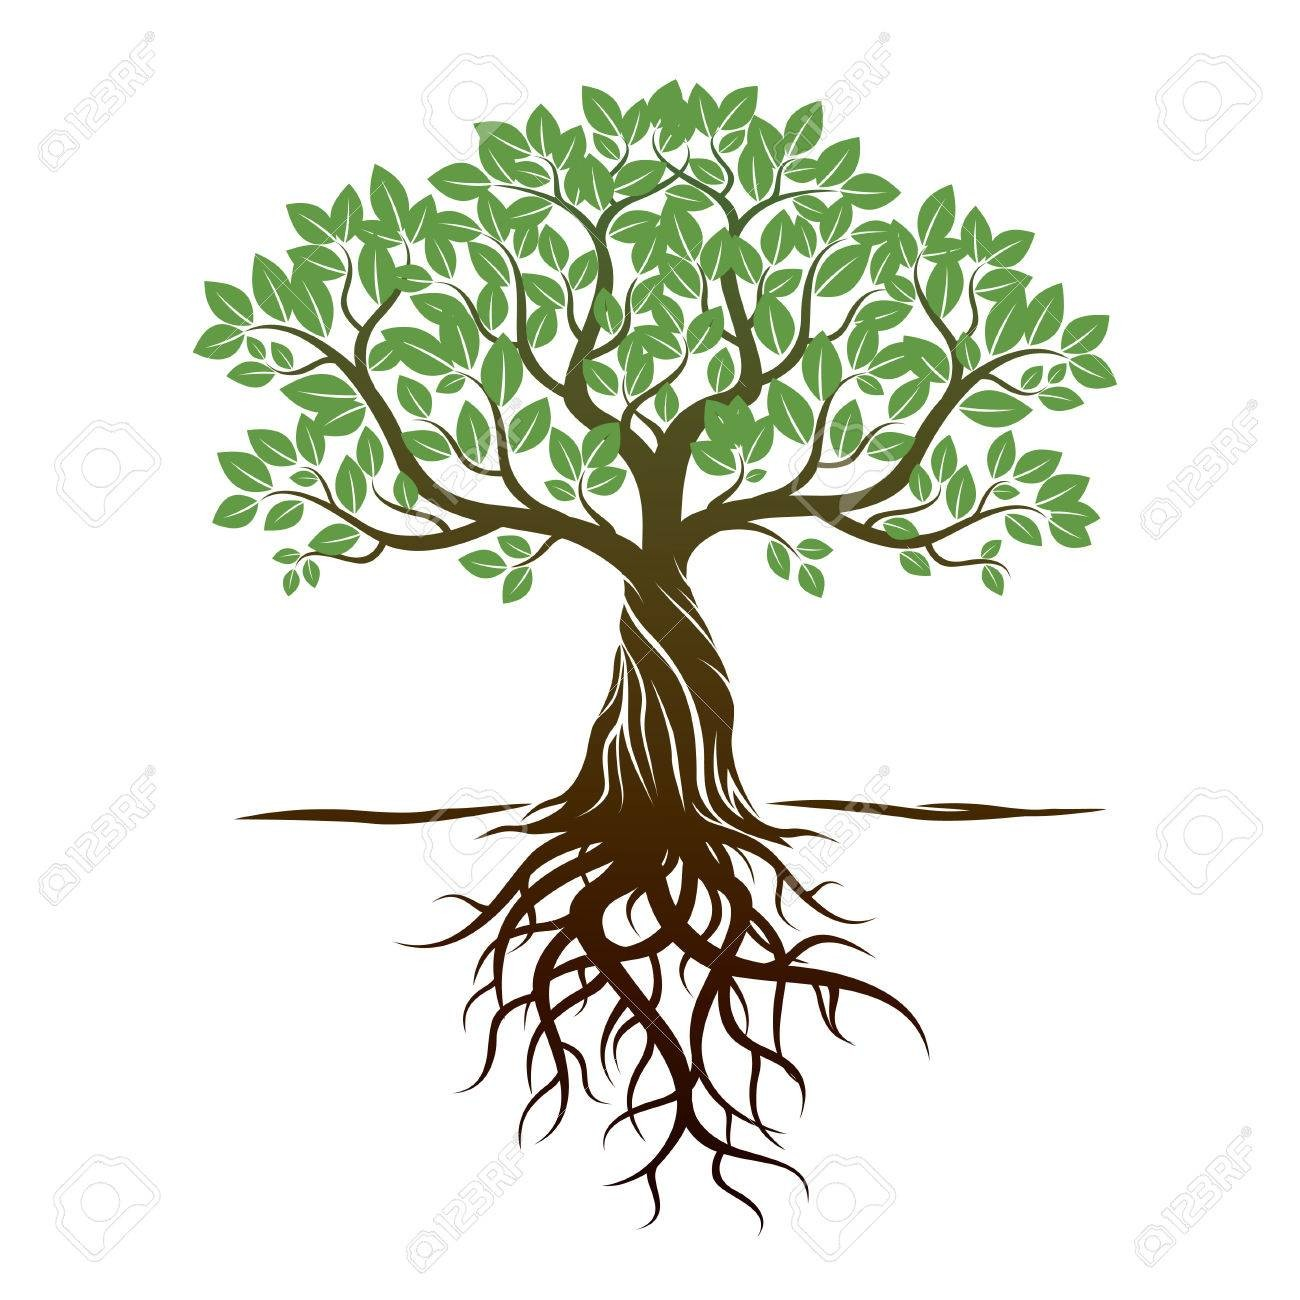 family tree clipart at getdrawings